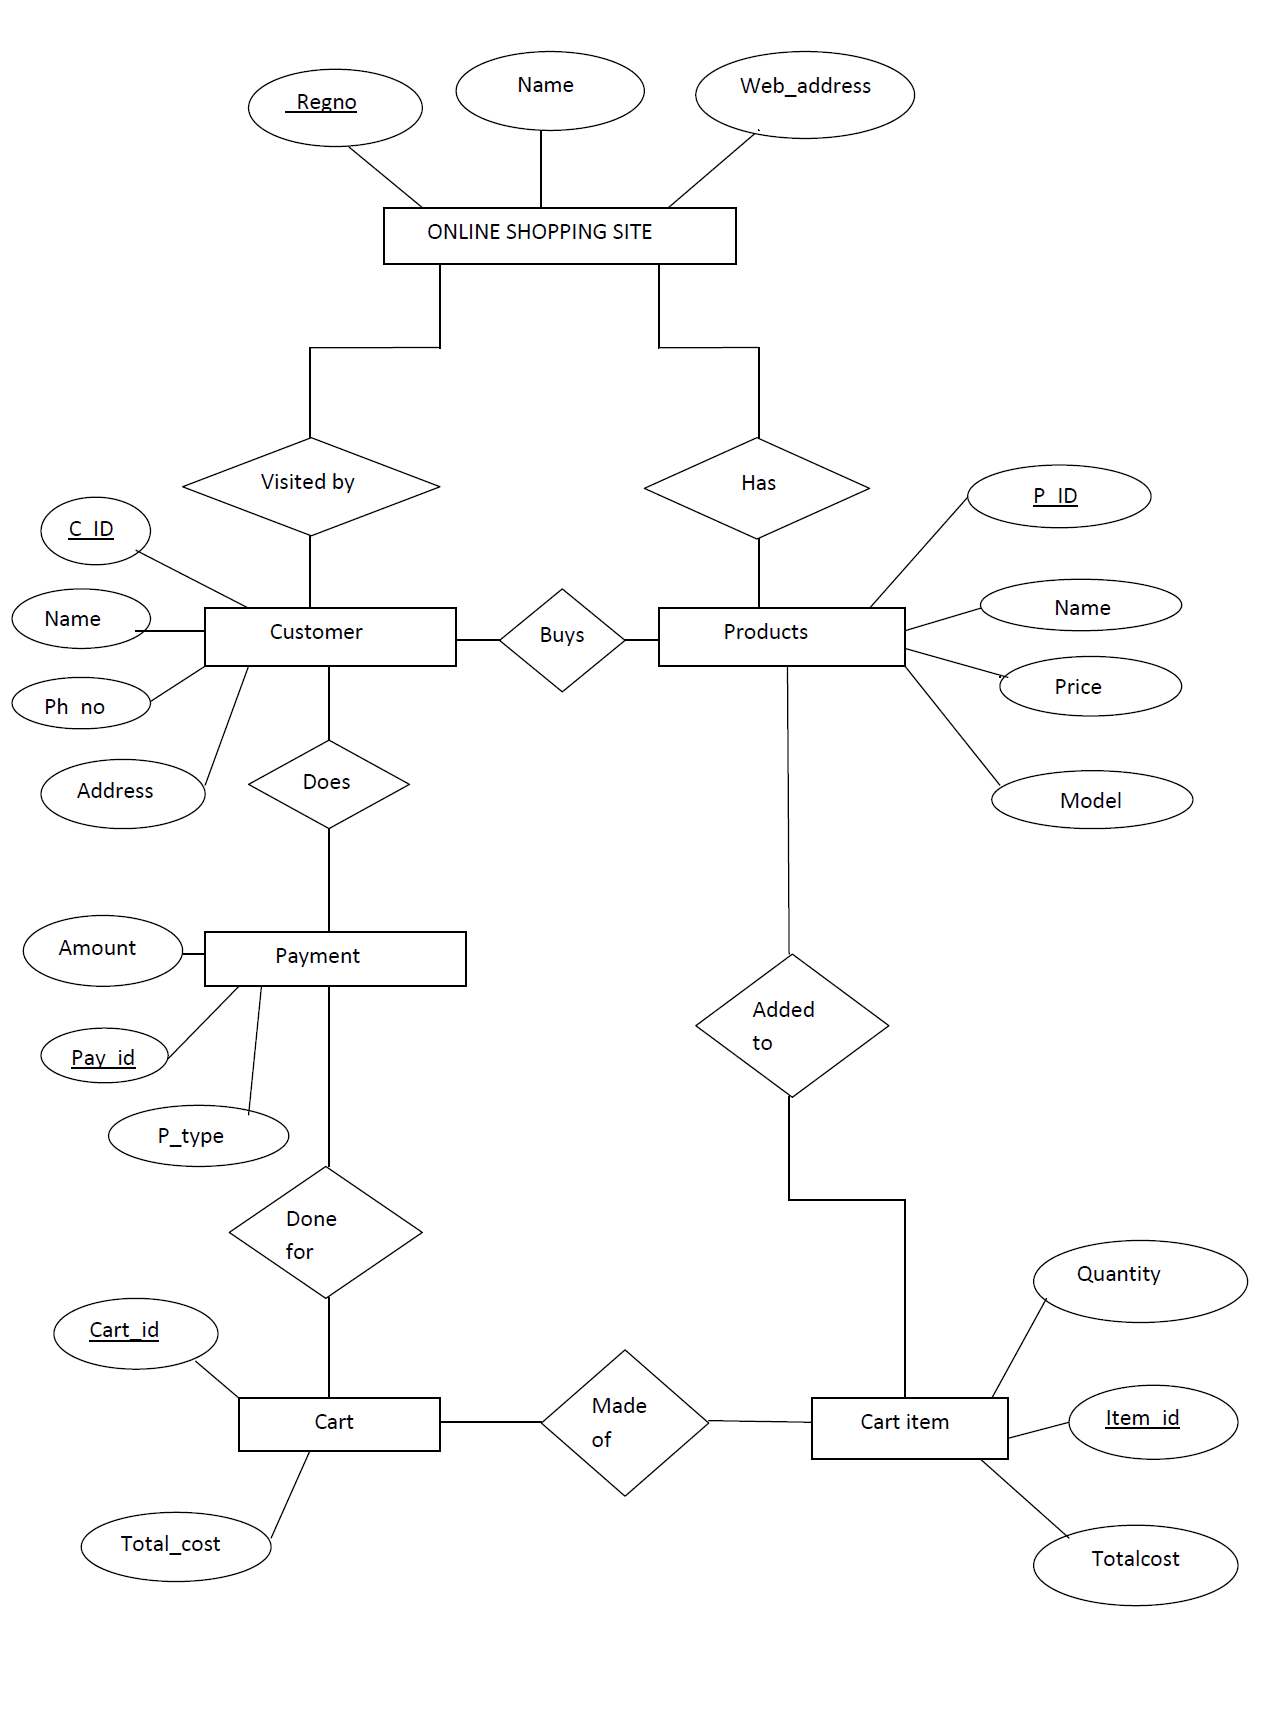 MAPPING ER DIAGRAM TO RELATIONAL MODEL Rollno 50 LBS Kuttipedia